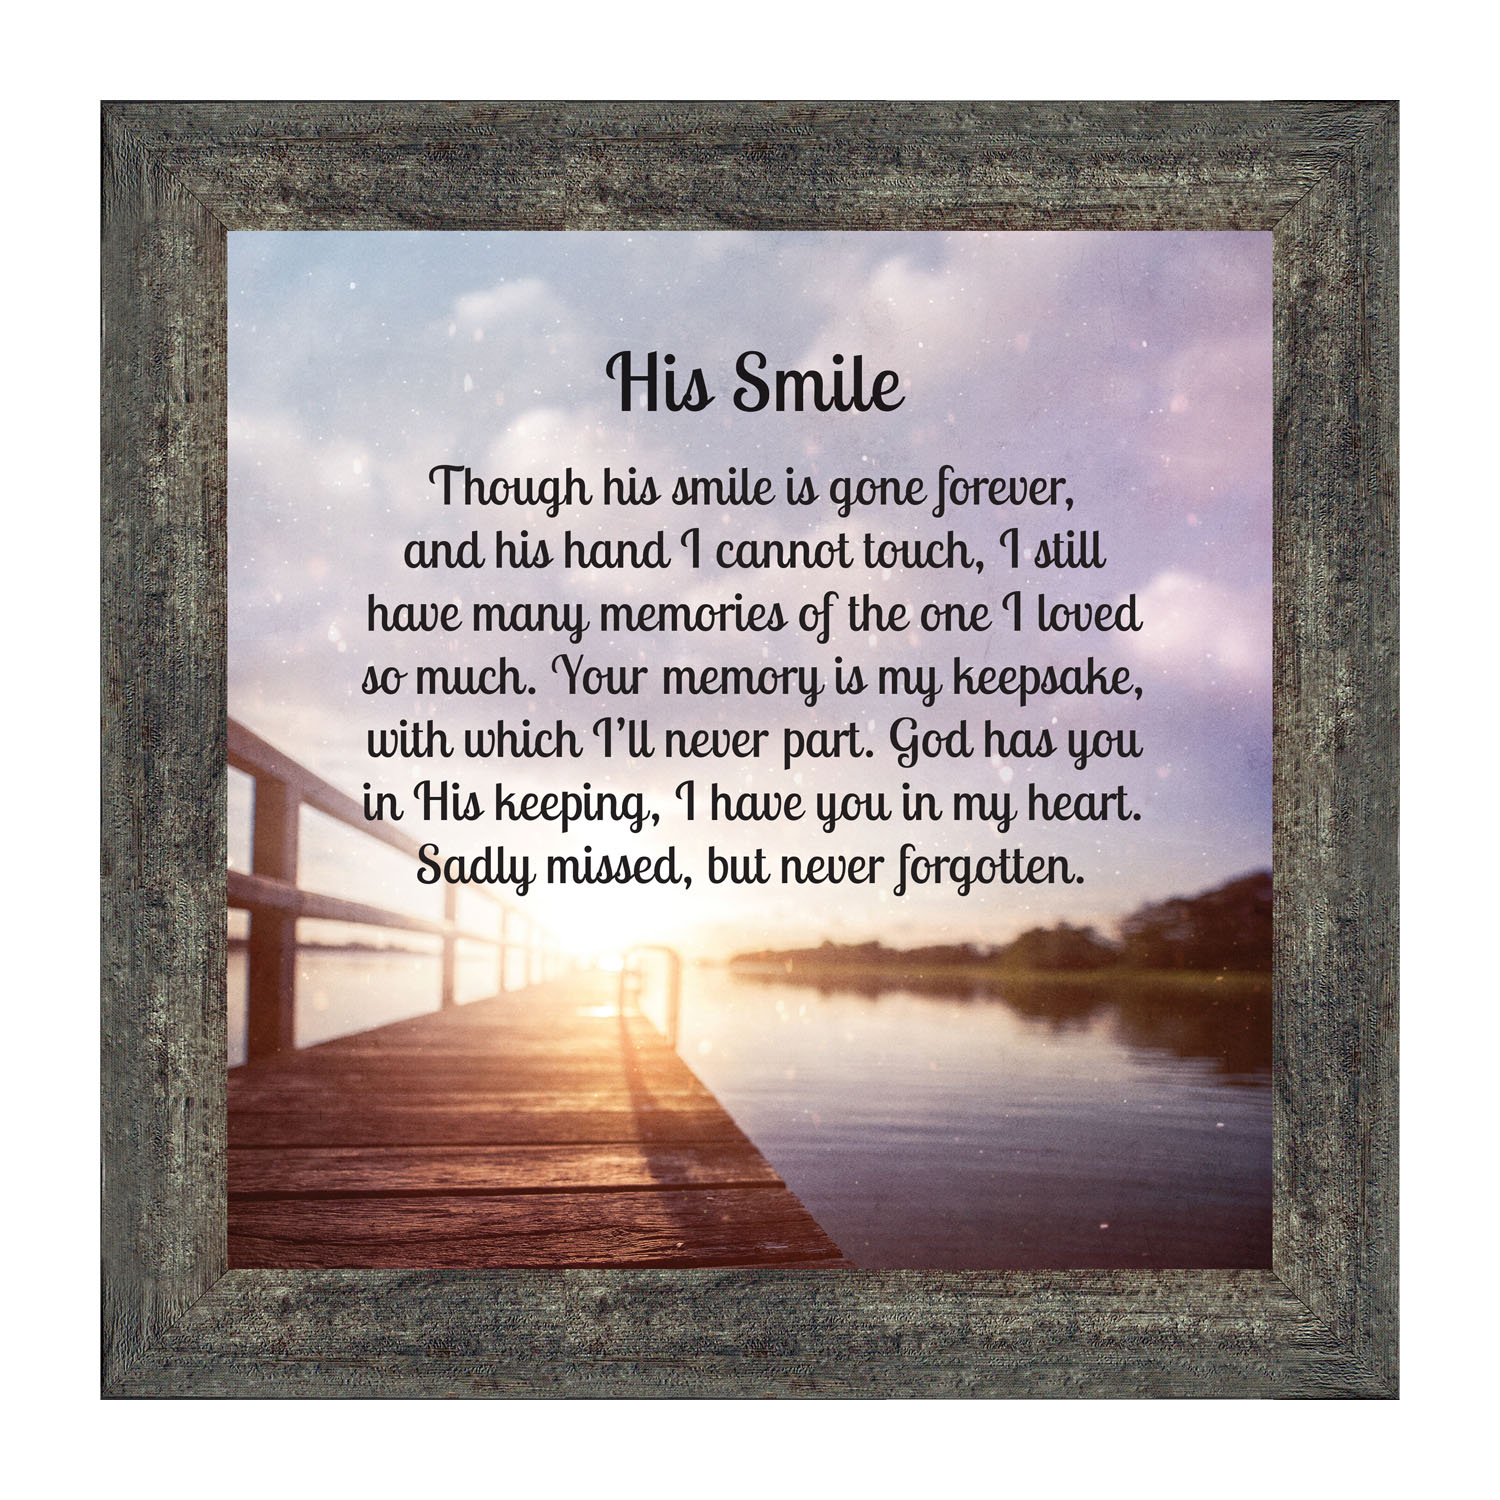 memorial sympathy condolence gift Personalized bereavement frame for loss of parent